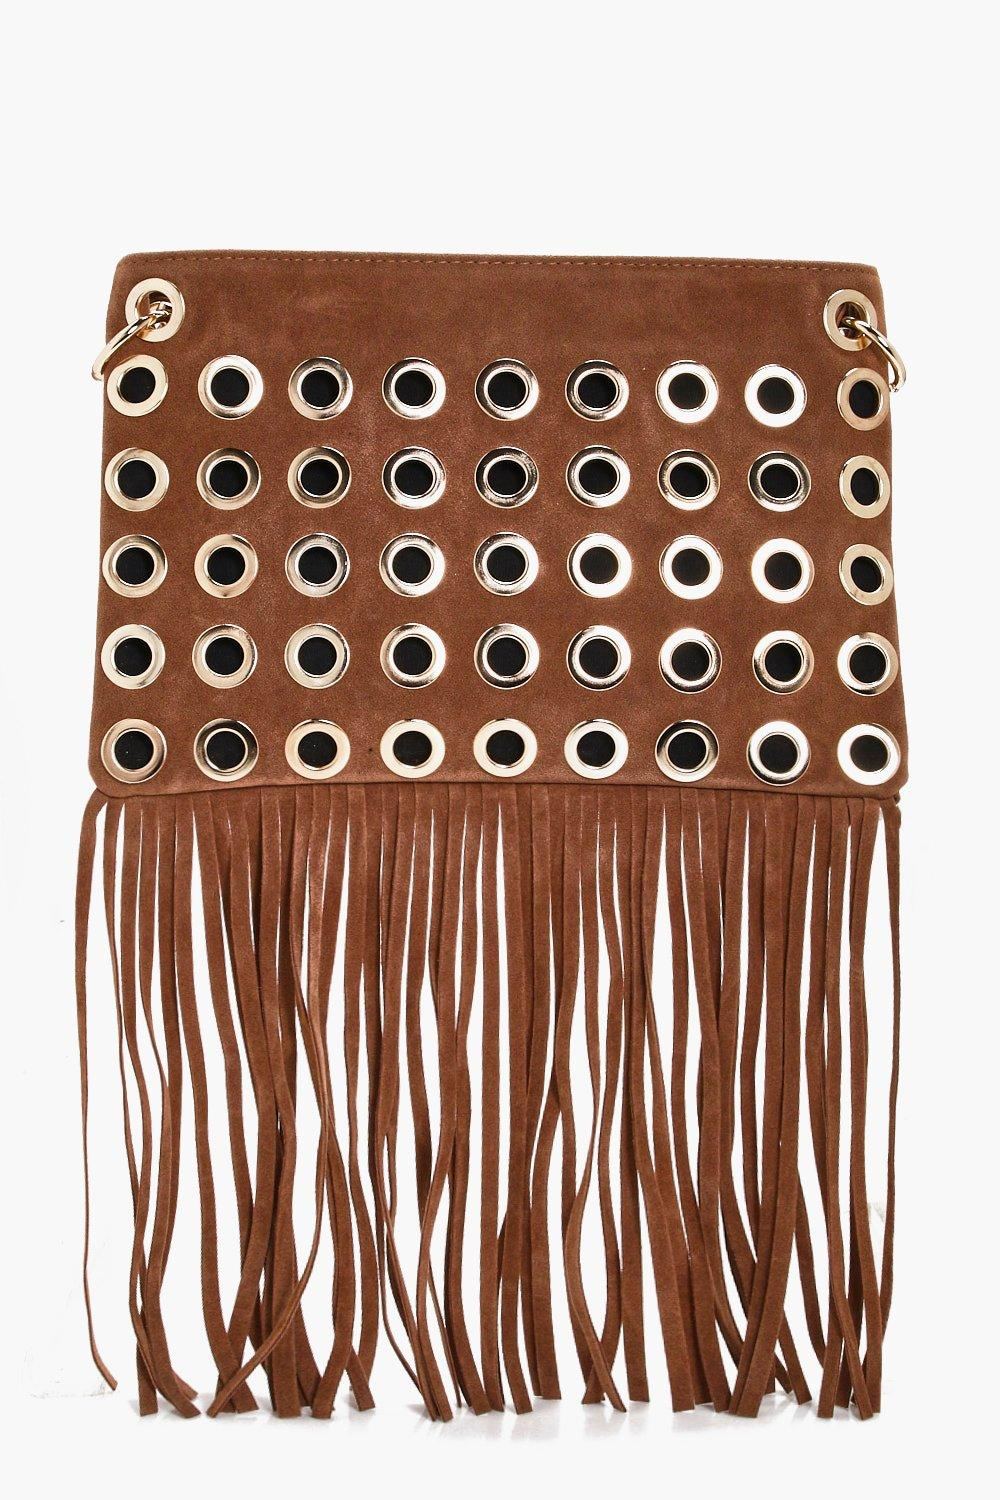 Eyelet Fringed Cross Body Bag - camel - Rosie Eyel